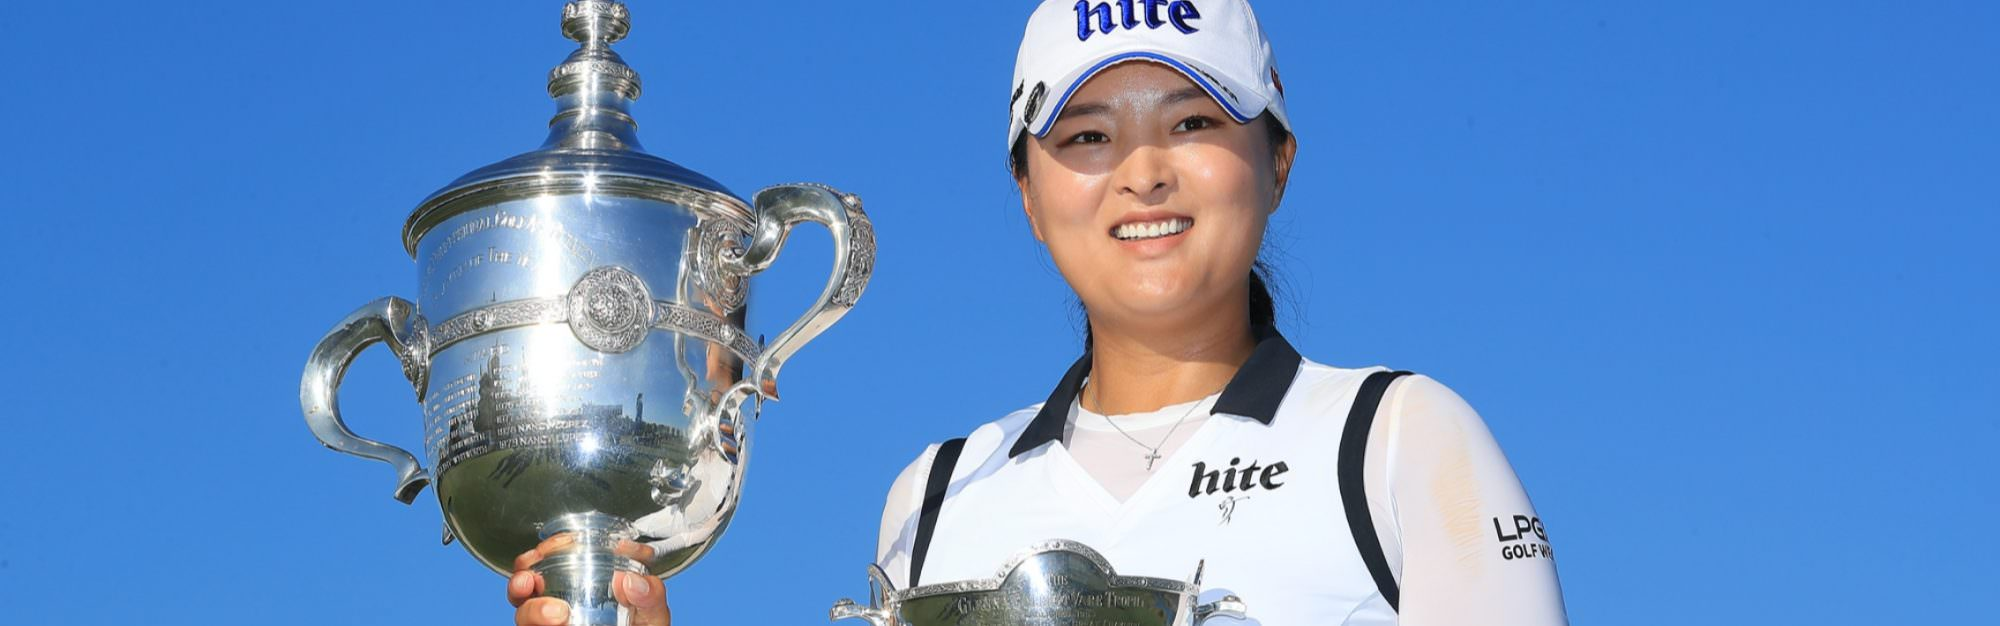 2021 LPGA Tour schedule and results